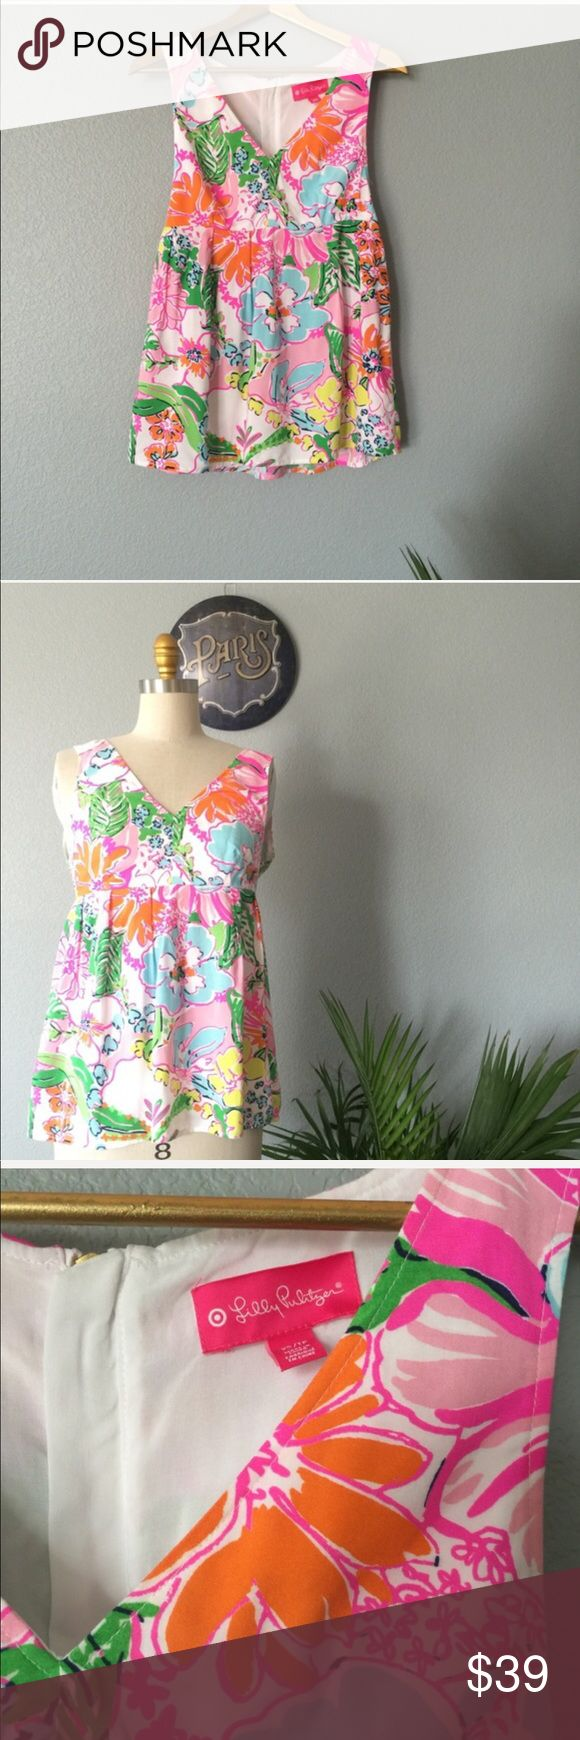 Lilly Pulitzer Peplum top size XS Lilly Pulitzer Baby Doll Top in the famous and so amazing pattern 💓 and so versatile. She'll and lining 100% Rayon. So perfect  NWOT ✅ will bundle 👌🏼✅🚭 ✅ all reasonable offers will be considered 👍🏼 🚫No Trading 🙅🏻 Poshmark rules only‼                        Ⓜwaist 26.5 Ⓜ️Bust 33.25 Ⓜ️ length from shoulder 28 Lilly Pulitzer for Target Tops Camisoles